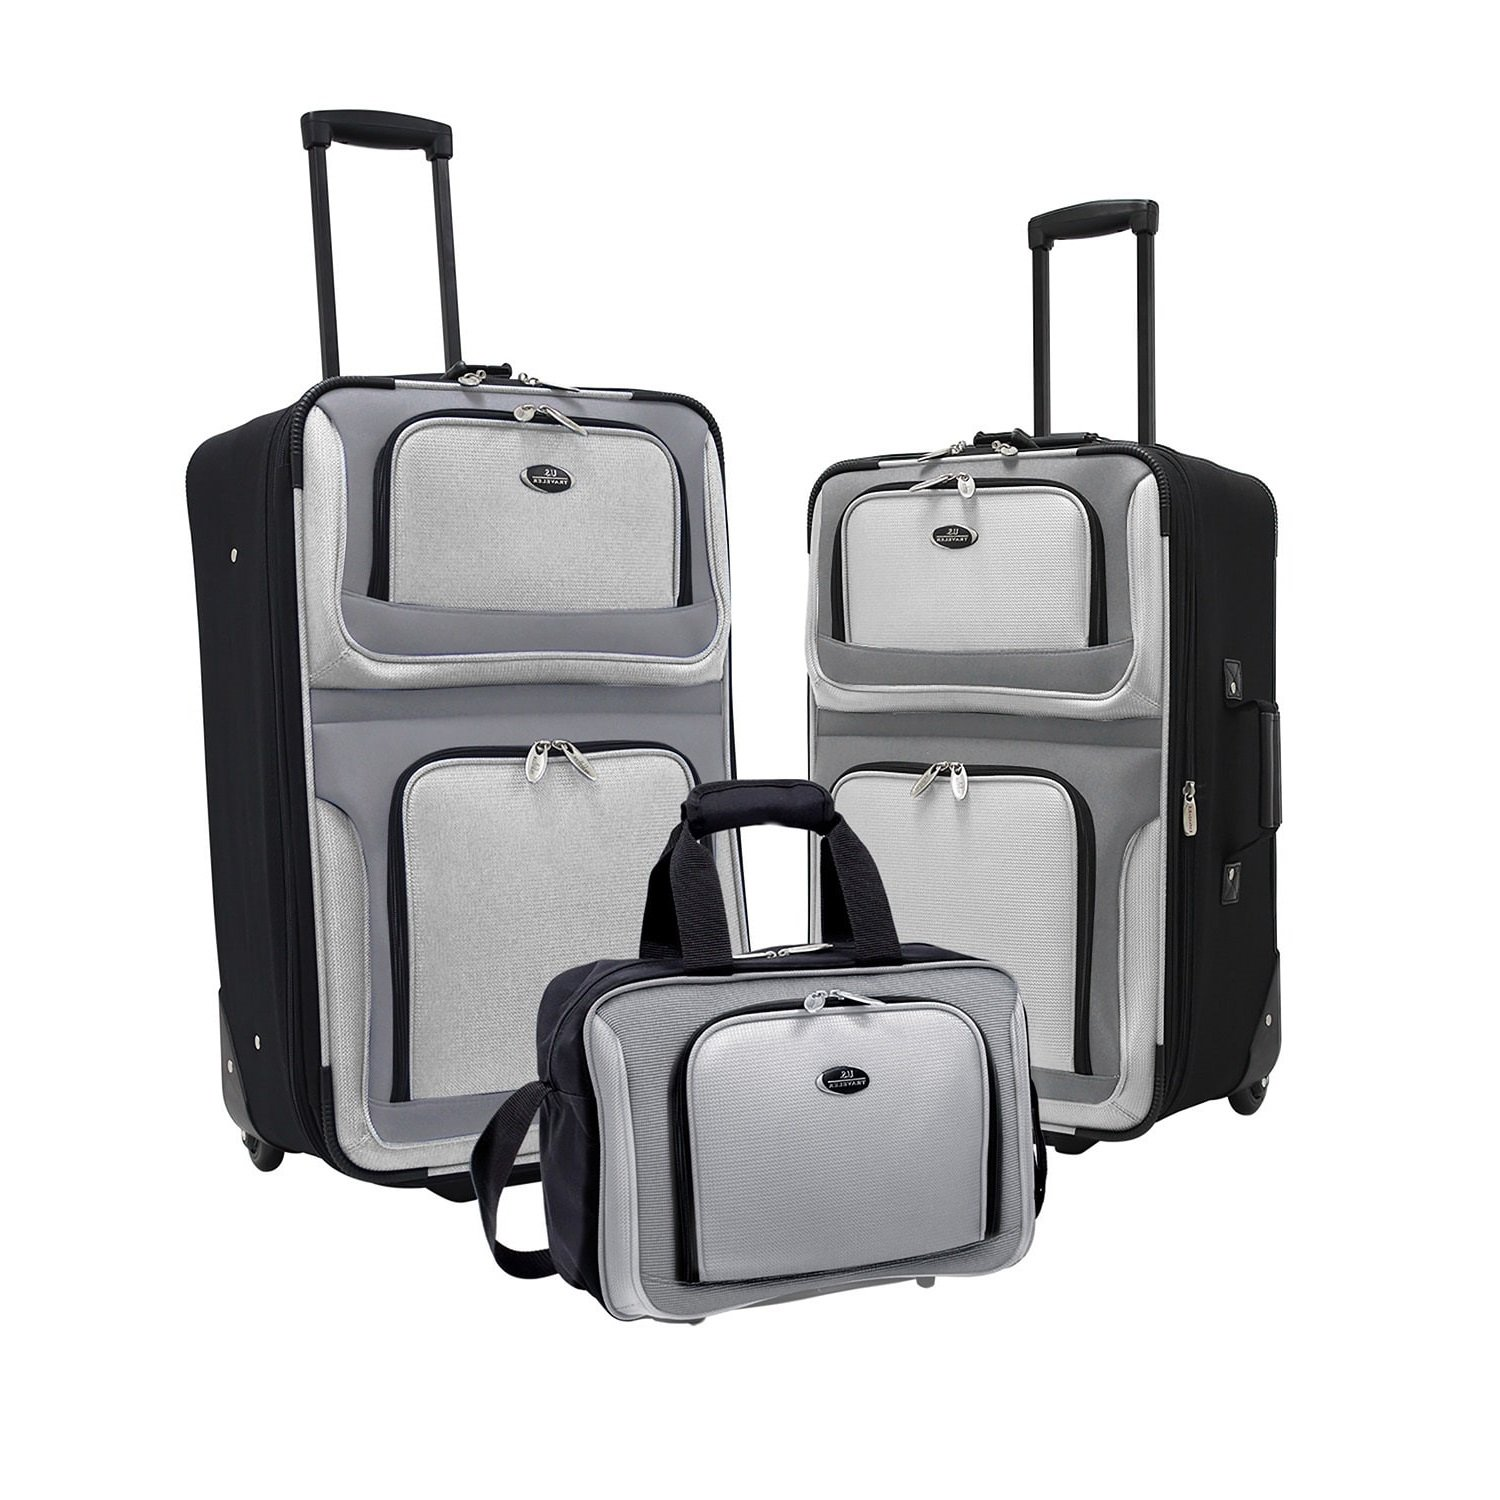 3 Piece Solid Color Blocked Design Rolling Lightweight Expandable Luggage Set Suitcases, Modern Fine Two Toned Theme, Softsided, Checkpoint Friendly, Multi Compartment, Soft Travel Cases, Grey, Black